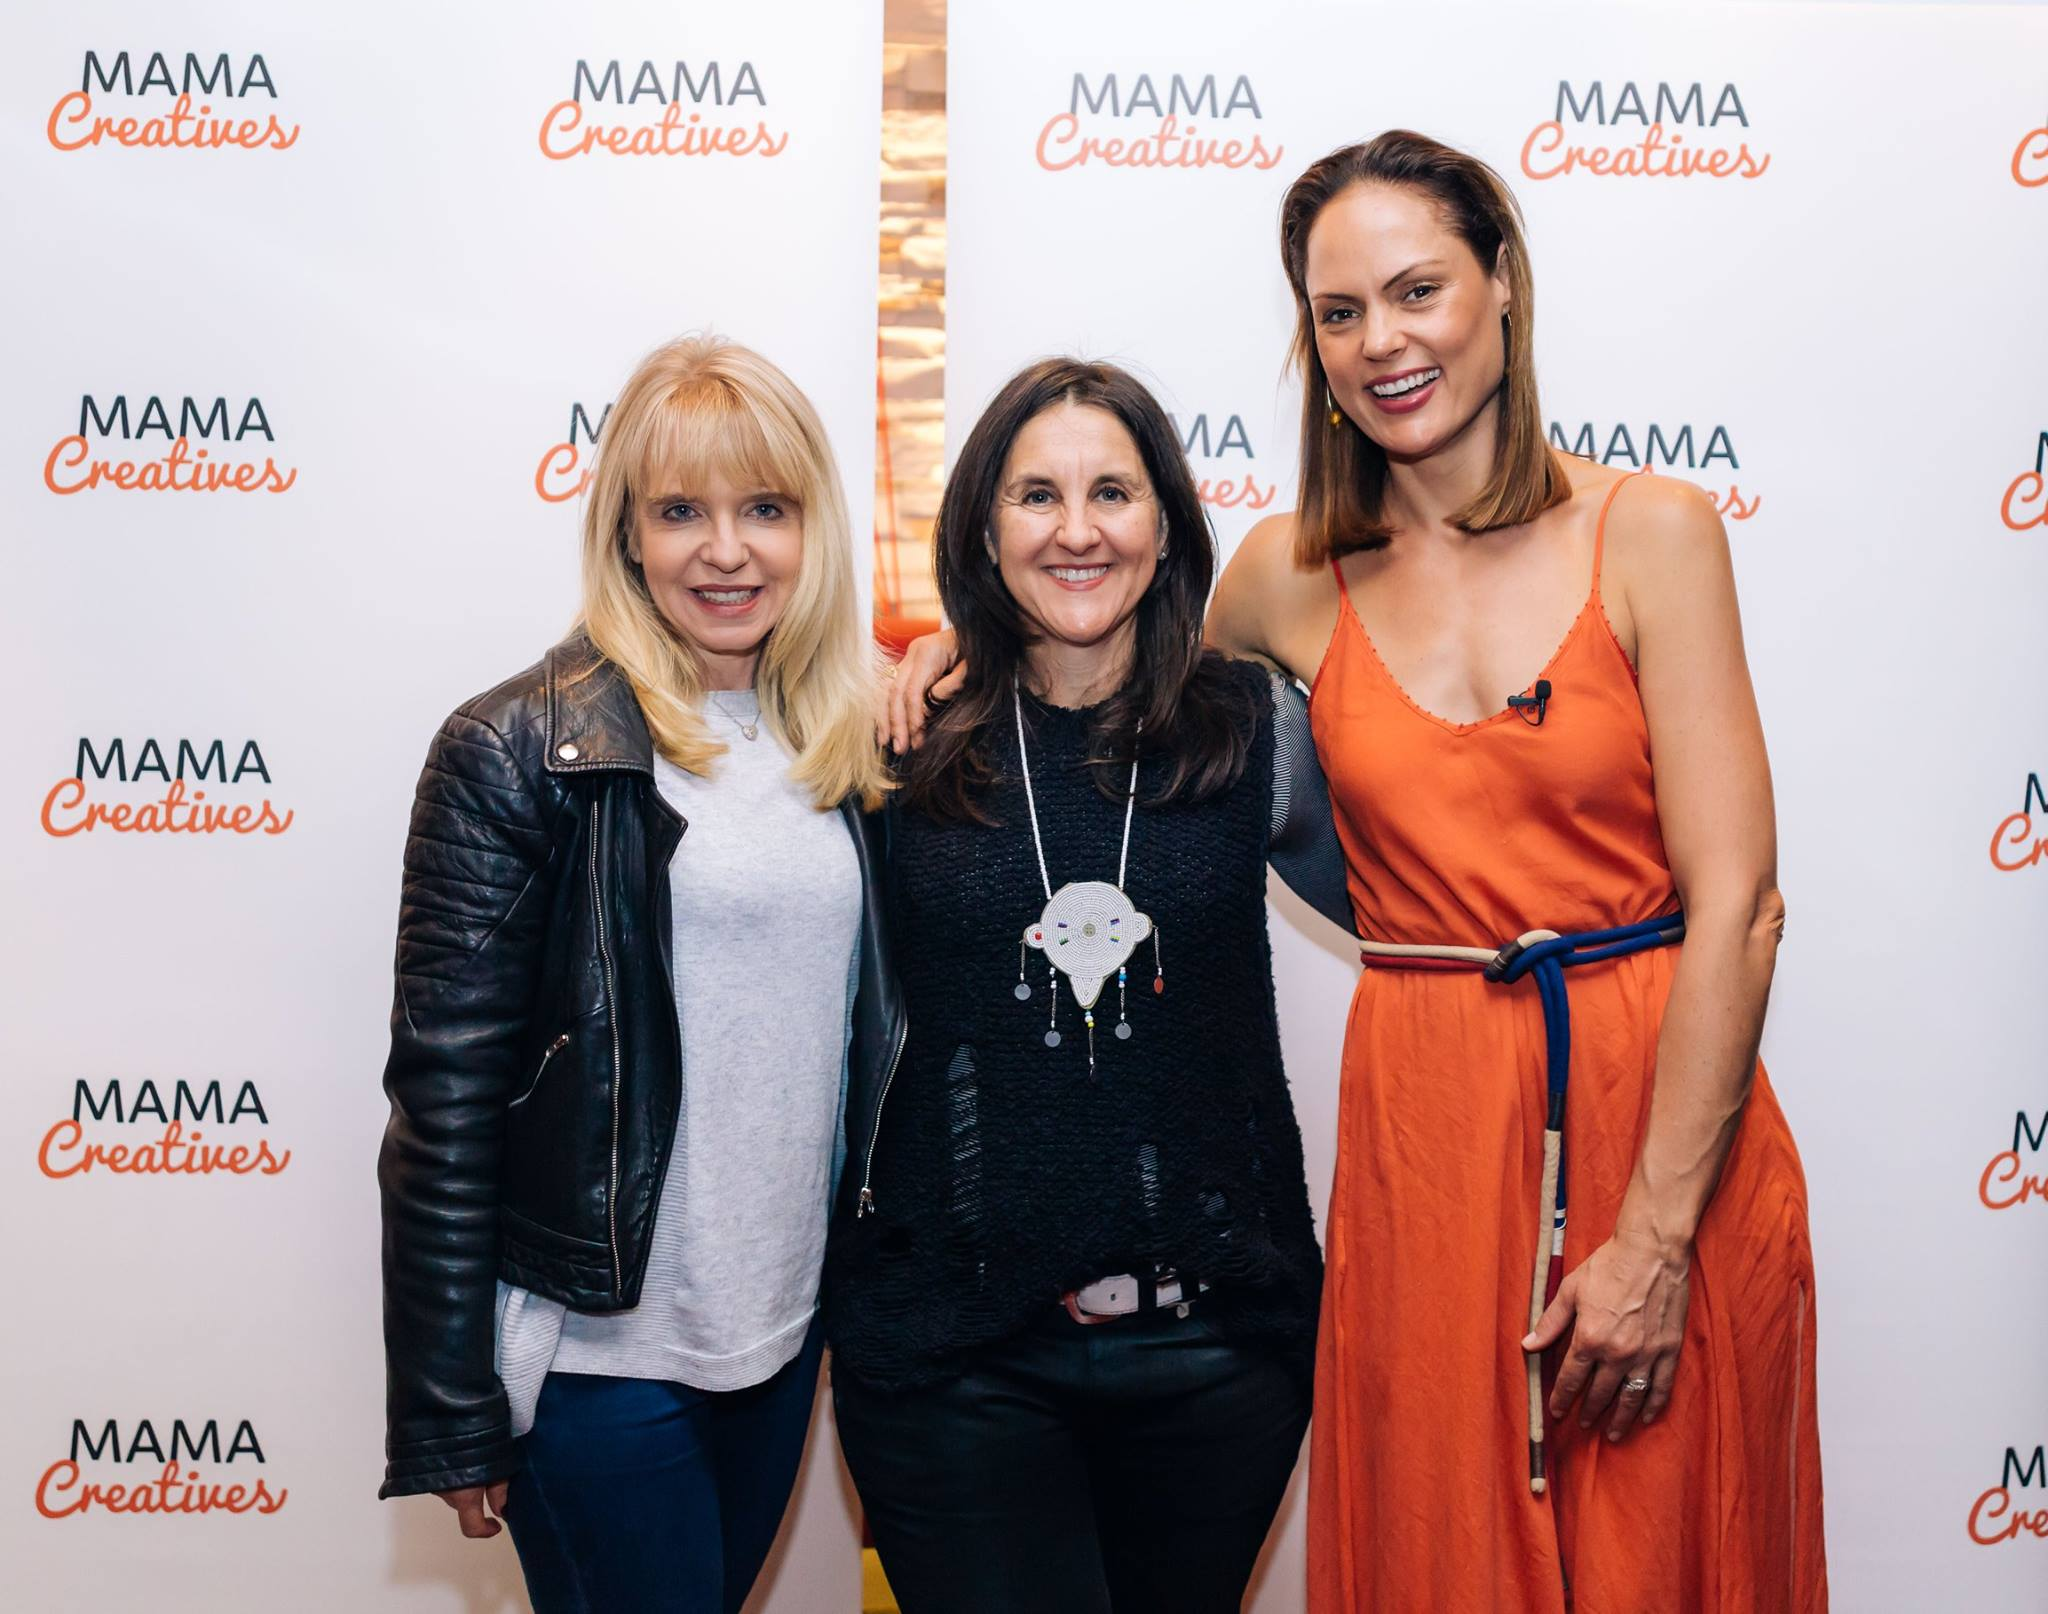 Jan and Tracey Fittinghoff Hayim, founder of Live Love Learn, hanging out on the red carpet with our inspiring Mother's Day guest mama, Zoe Bingley-Pullin.